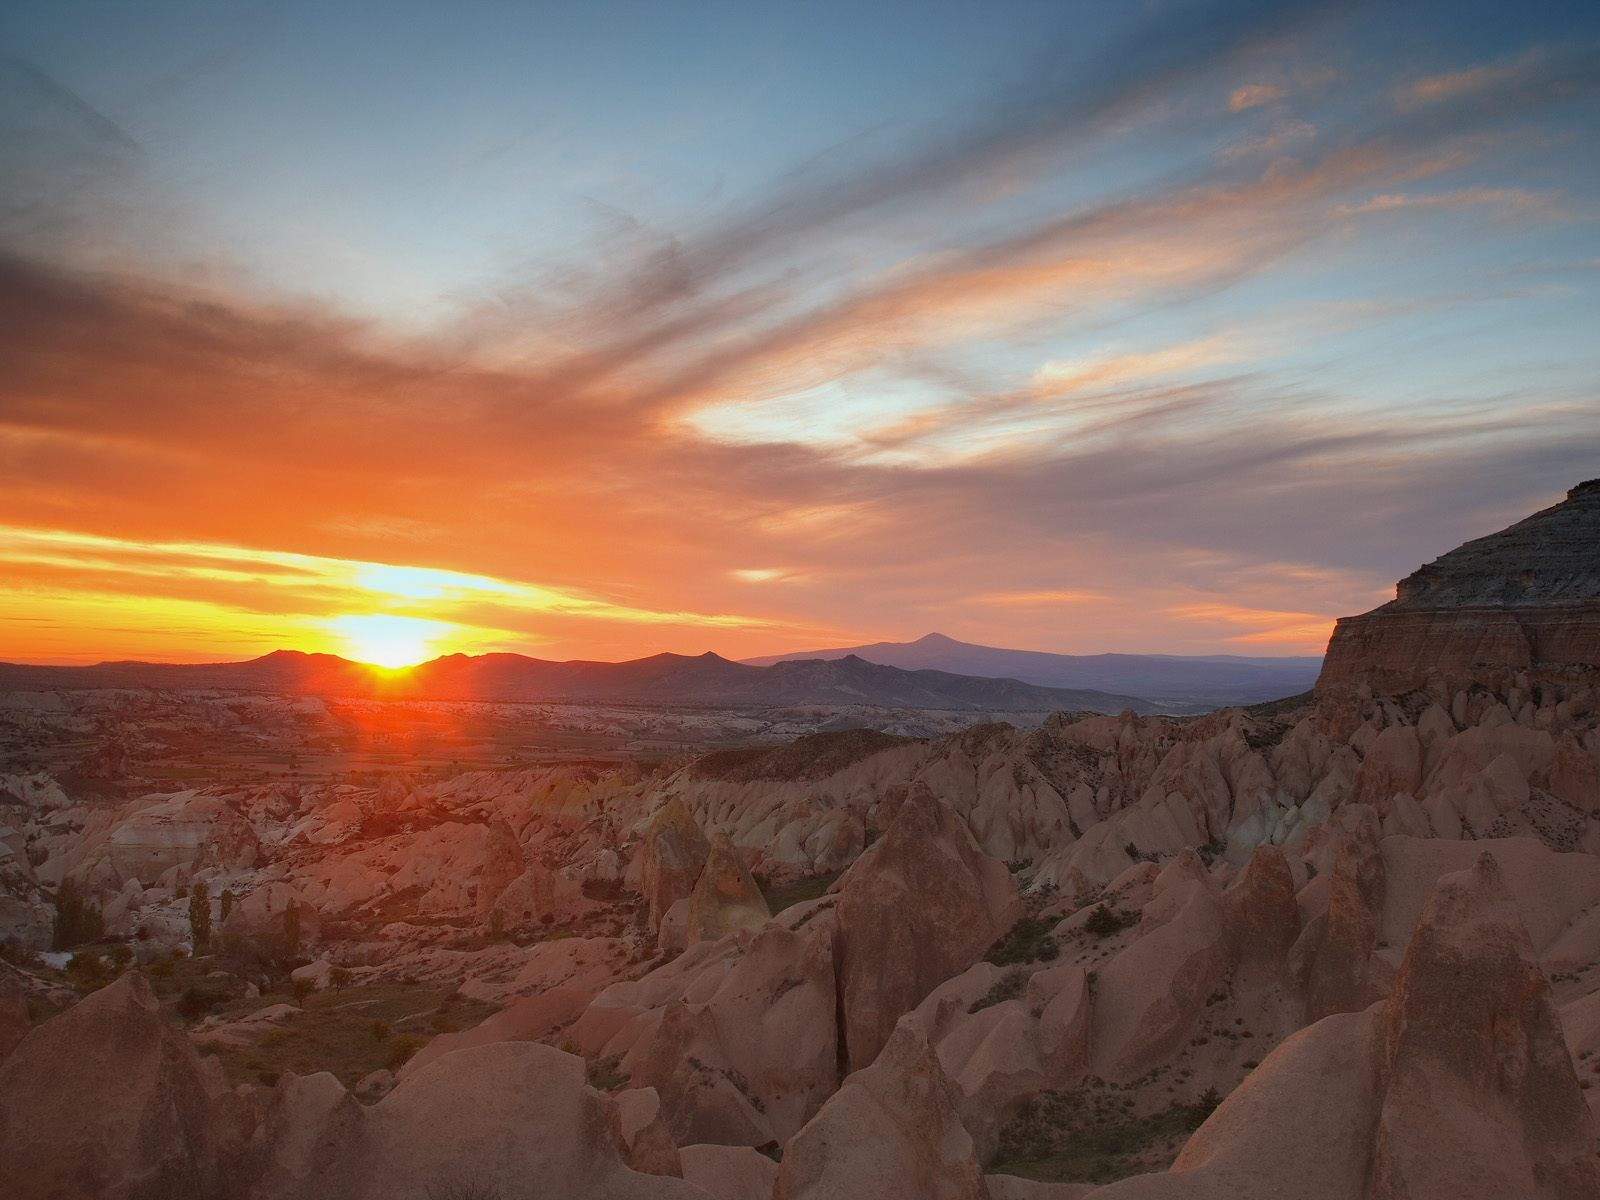 sunset badlands National Park HD Wallpaper